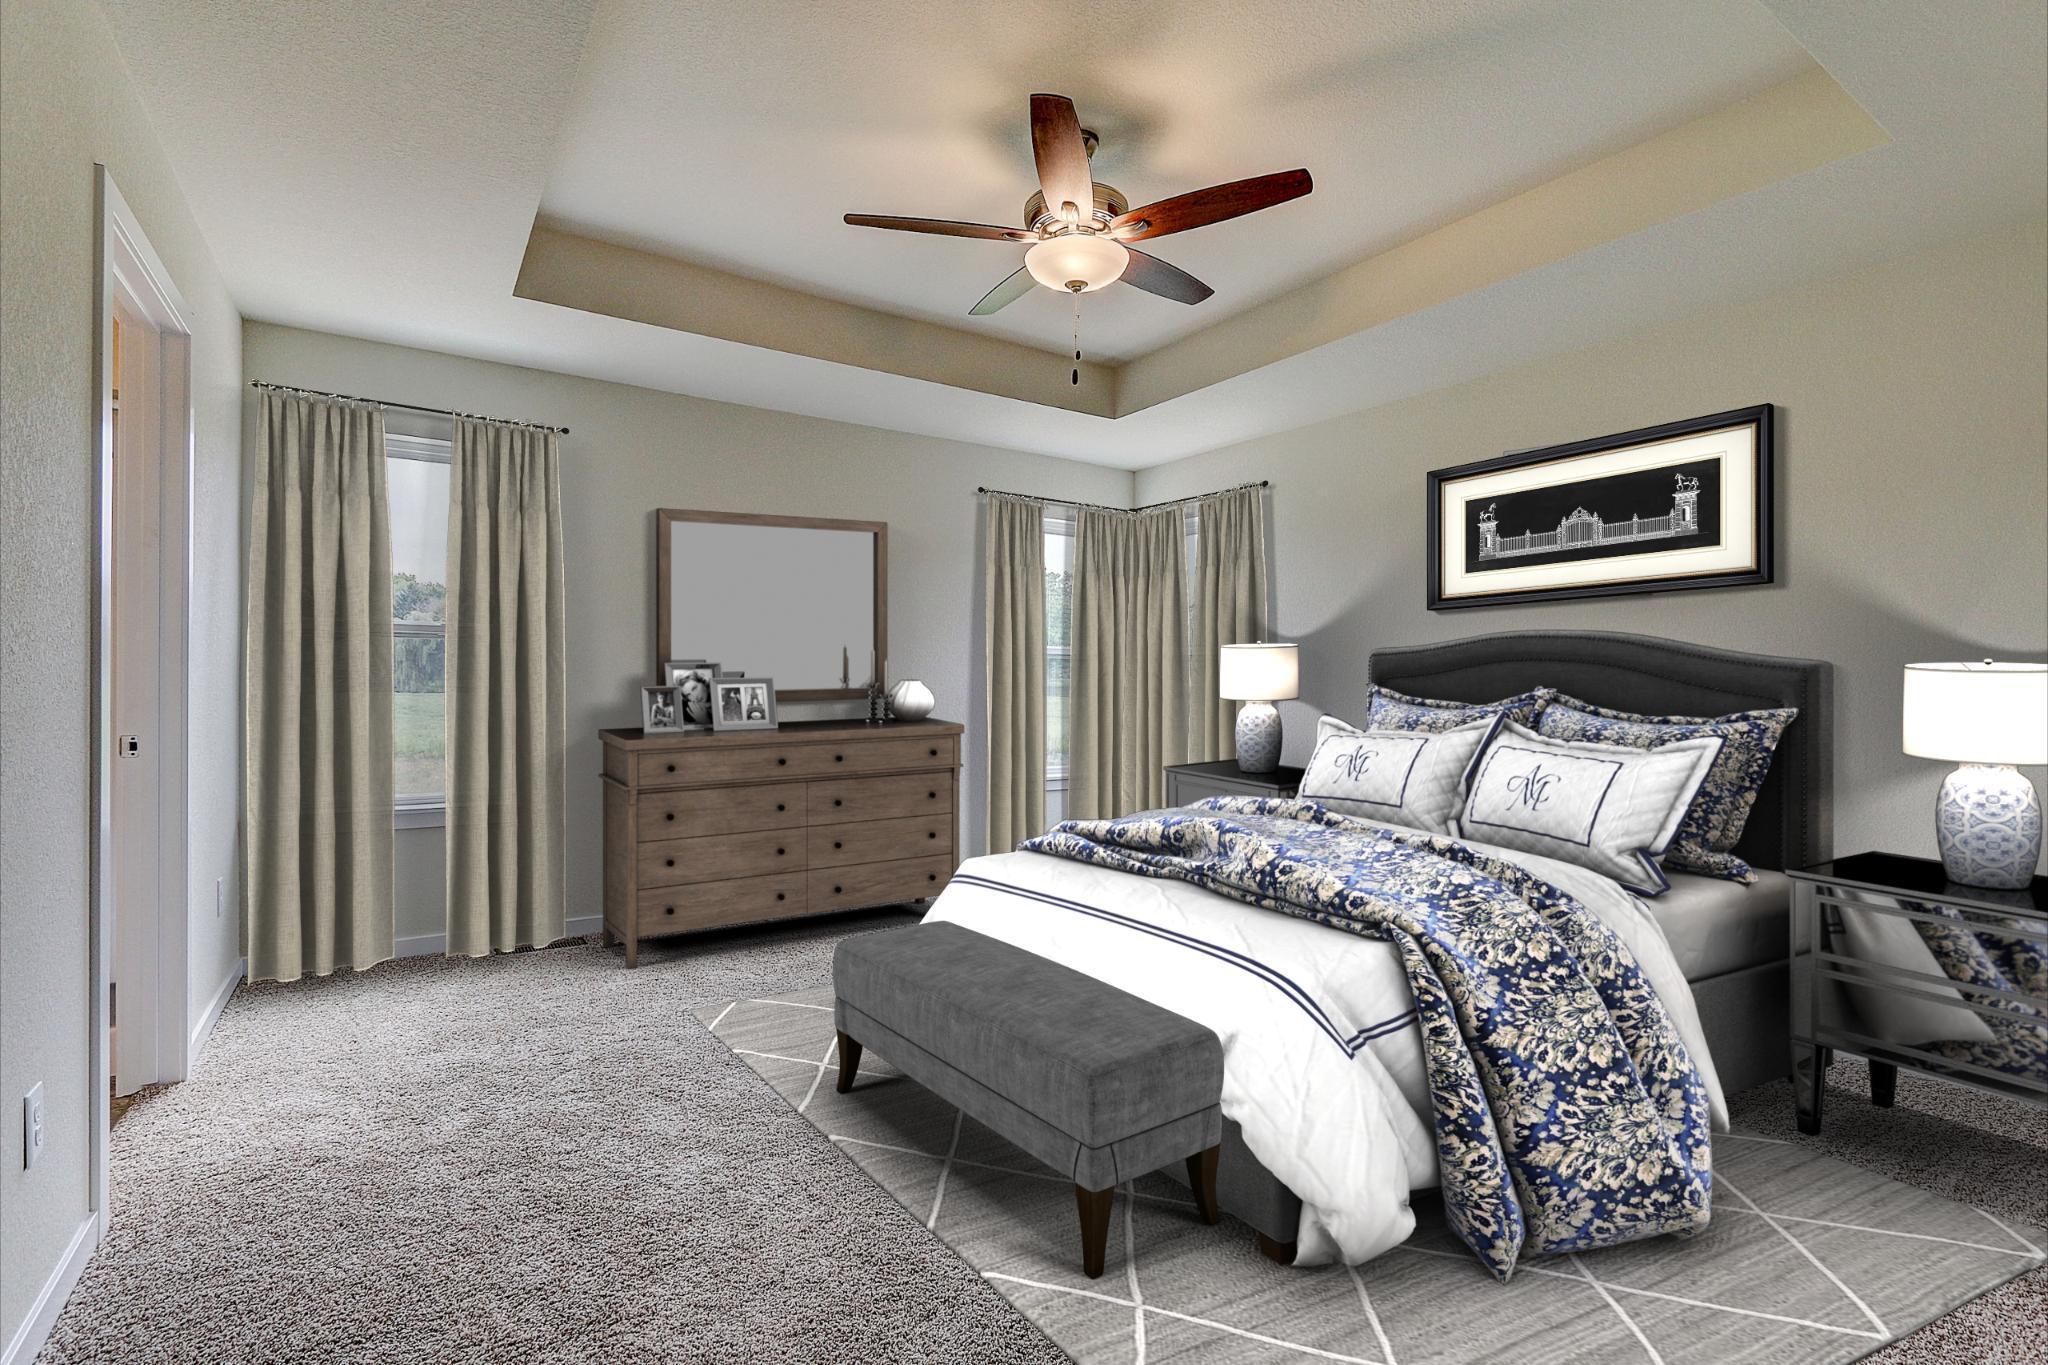 Bedroom featured in the Catalina By Harbor Homes in Ozaukee-Sheboygan, WI